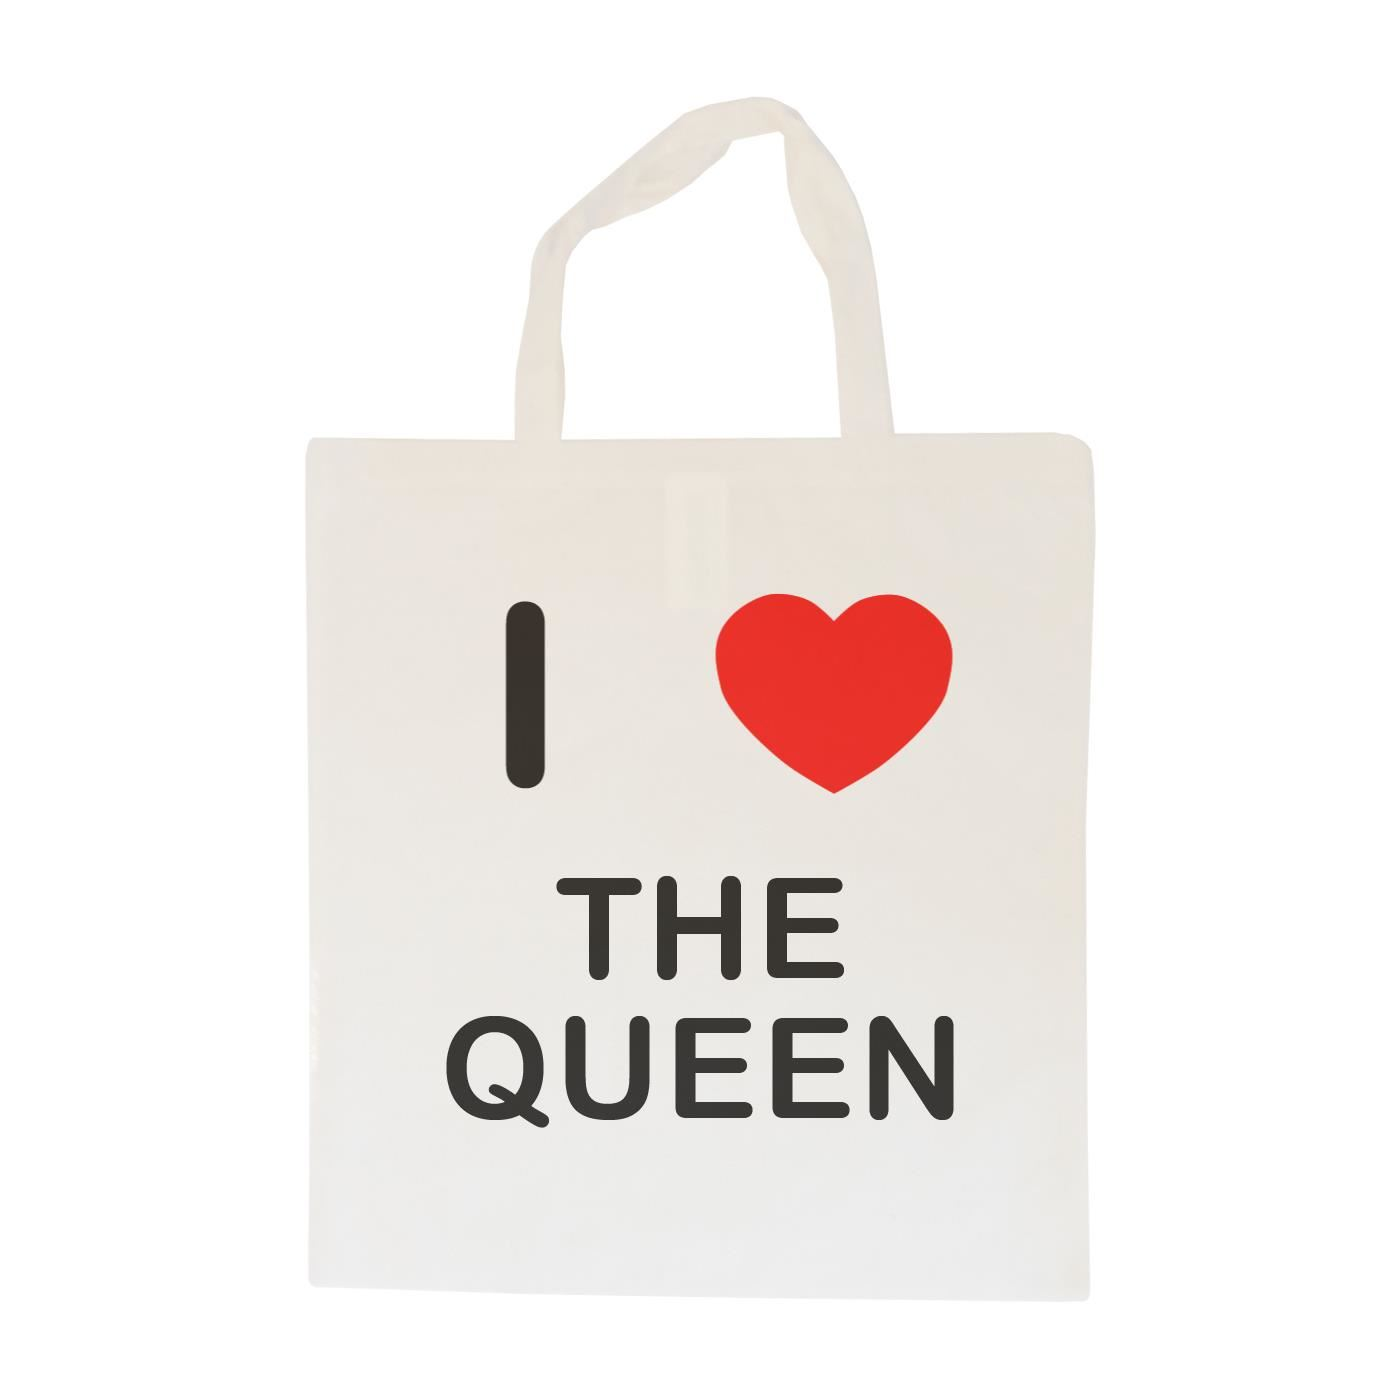 I Love The Queen - Cotton Bag | Size choice Tote, Shopper or Sling